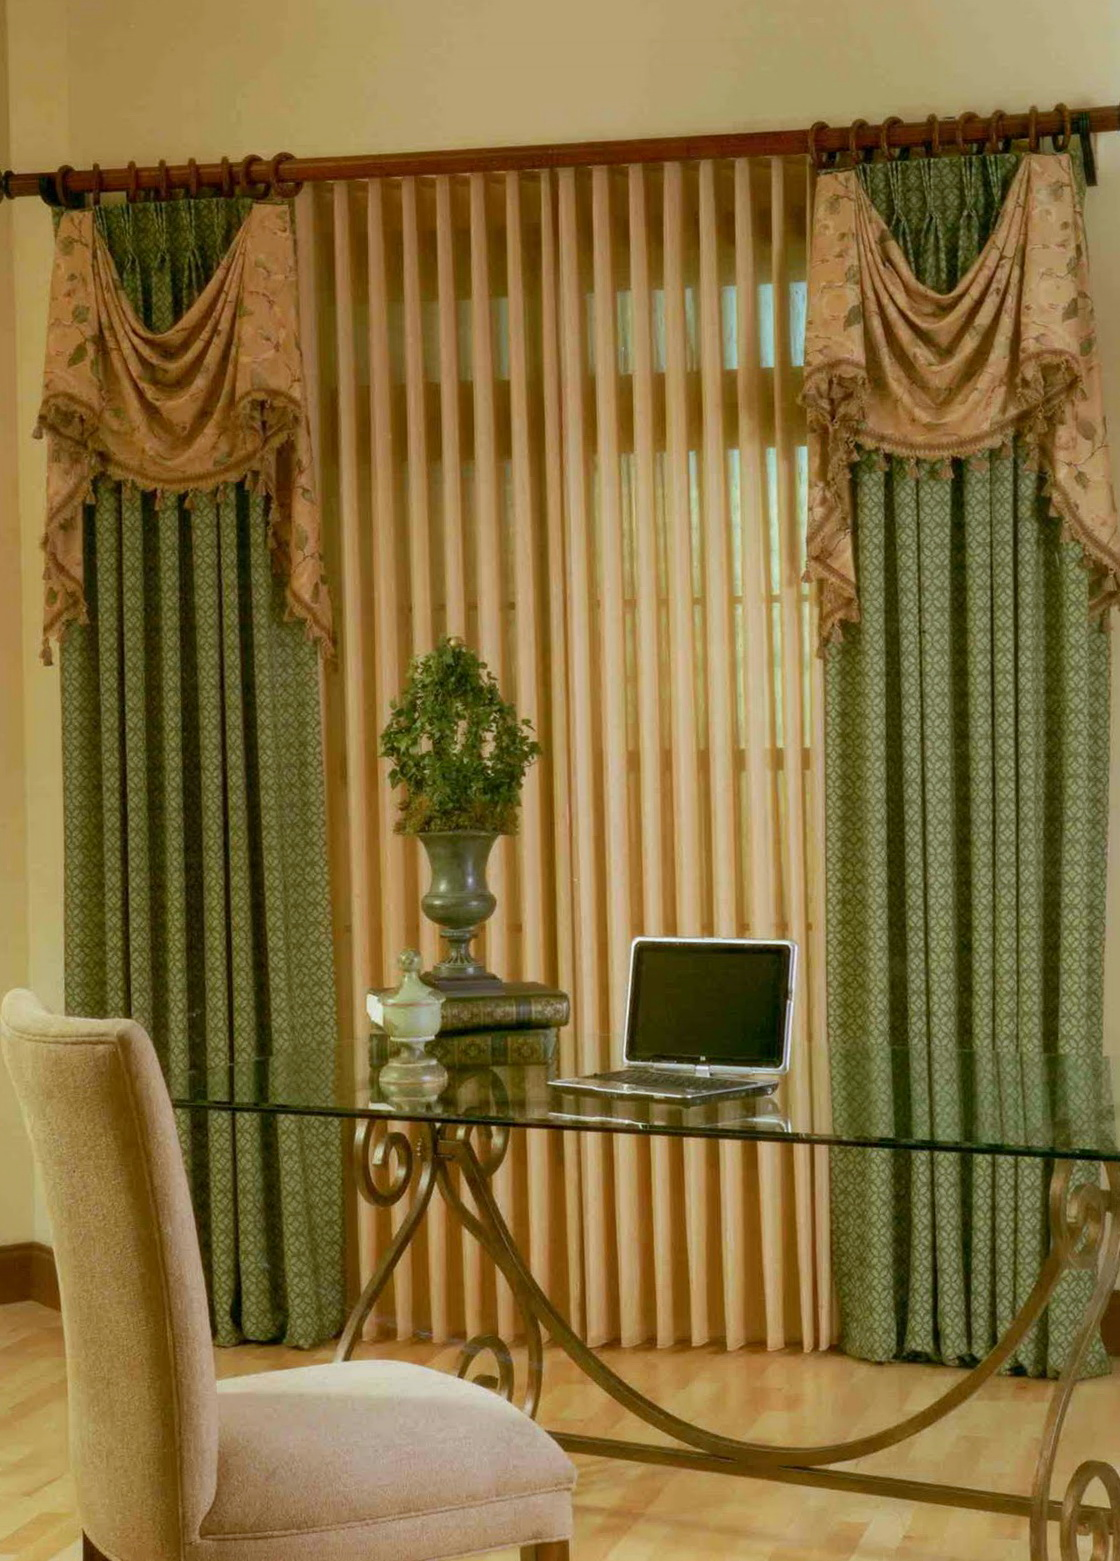 Pictures Of Blinds And Curtains Together